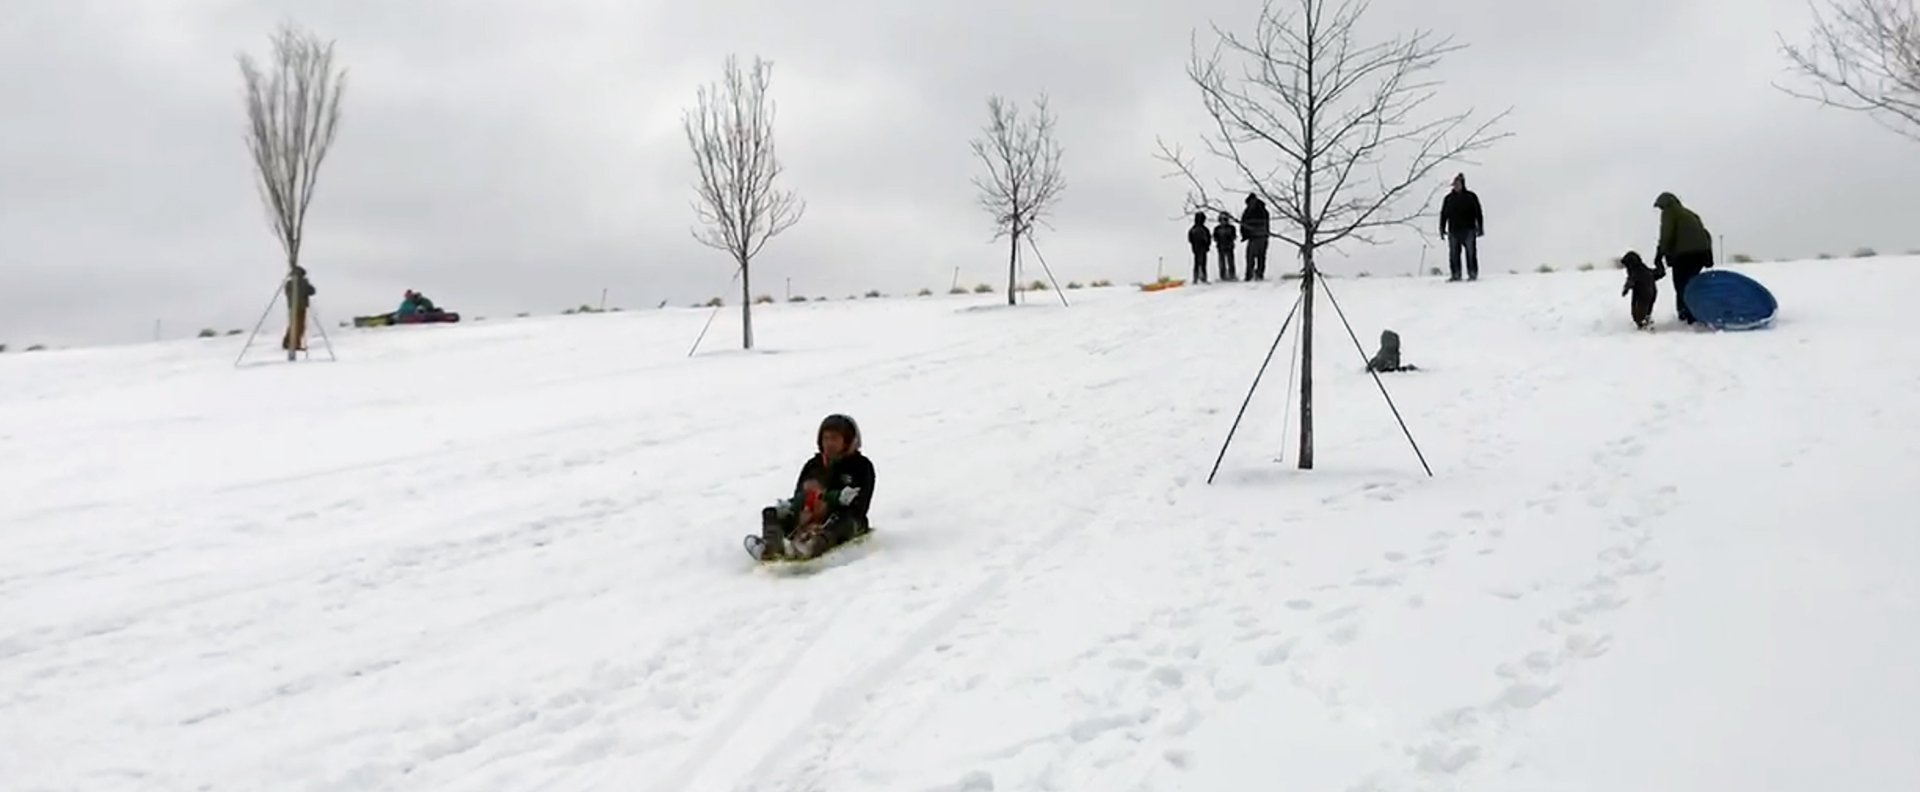 Snow Day Play at Scissortail Park